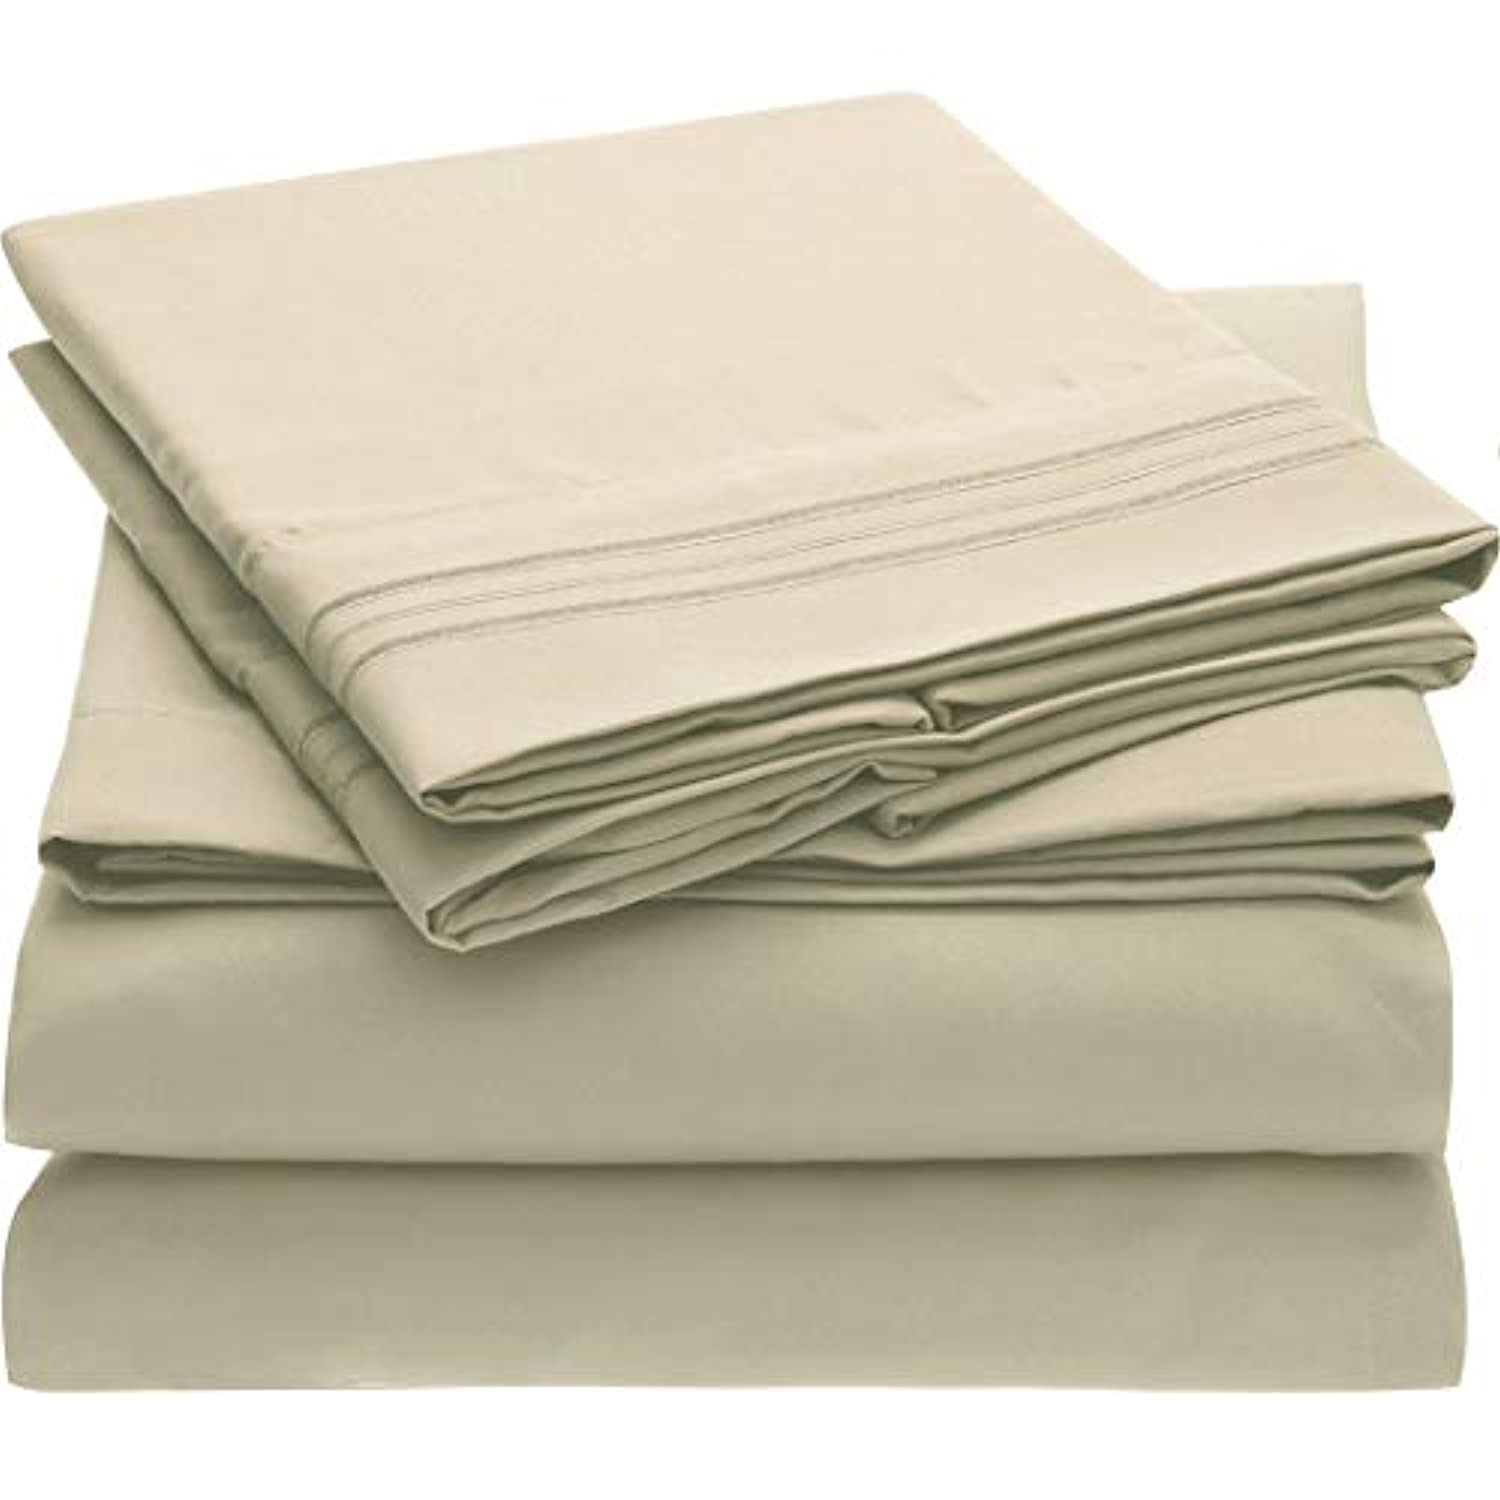 Classier: Buy Mellanni #1 Bed Sheet Set - HIGHEST QUALITY Brushed Microfiber 1800 Bedding - Wrinkle, Fade, Stain Resistant - Hypoallergenic - Mellanni (Queen, Beige)